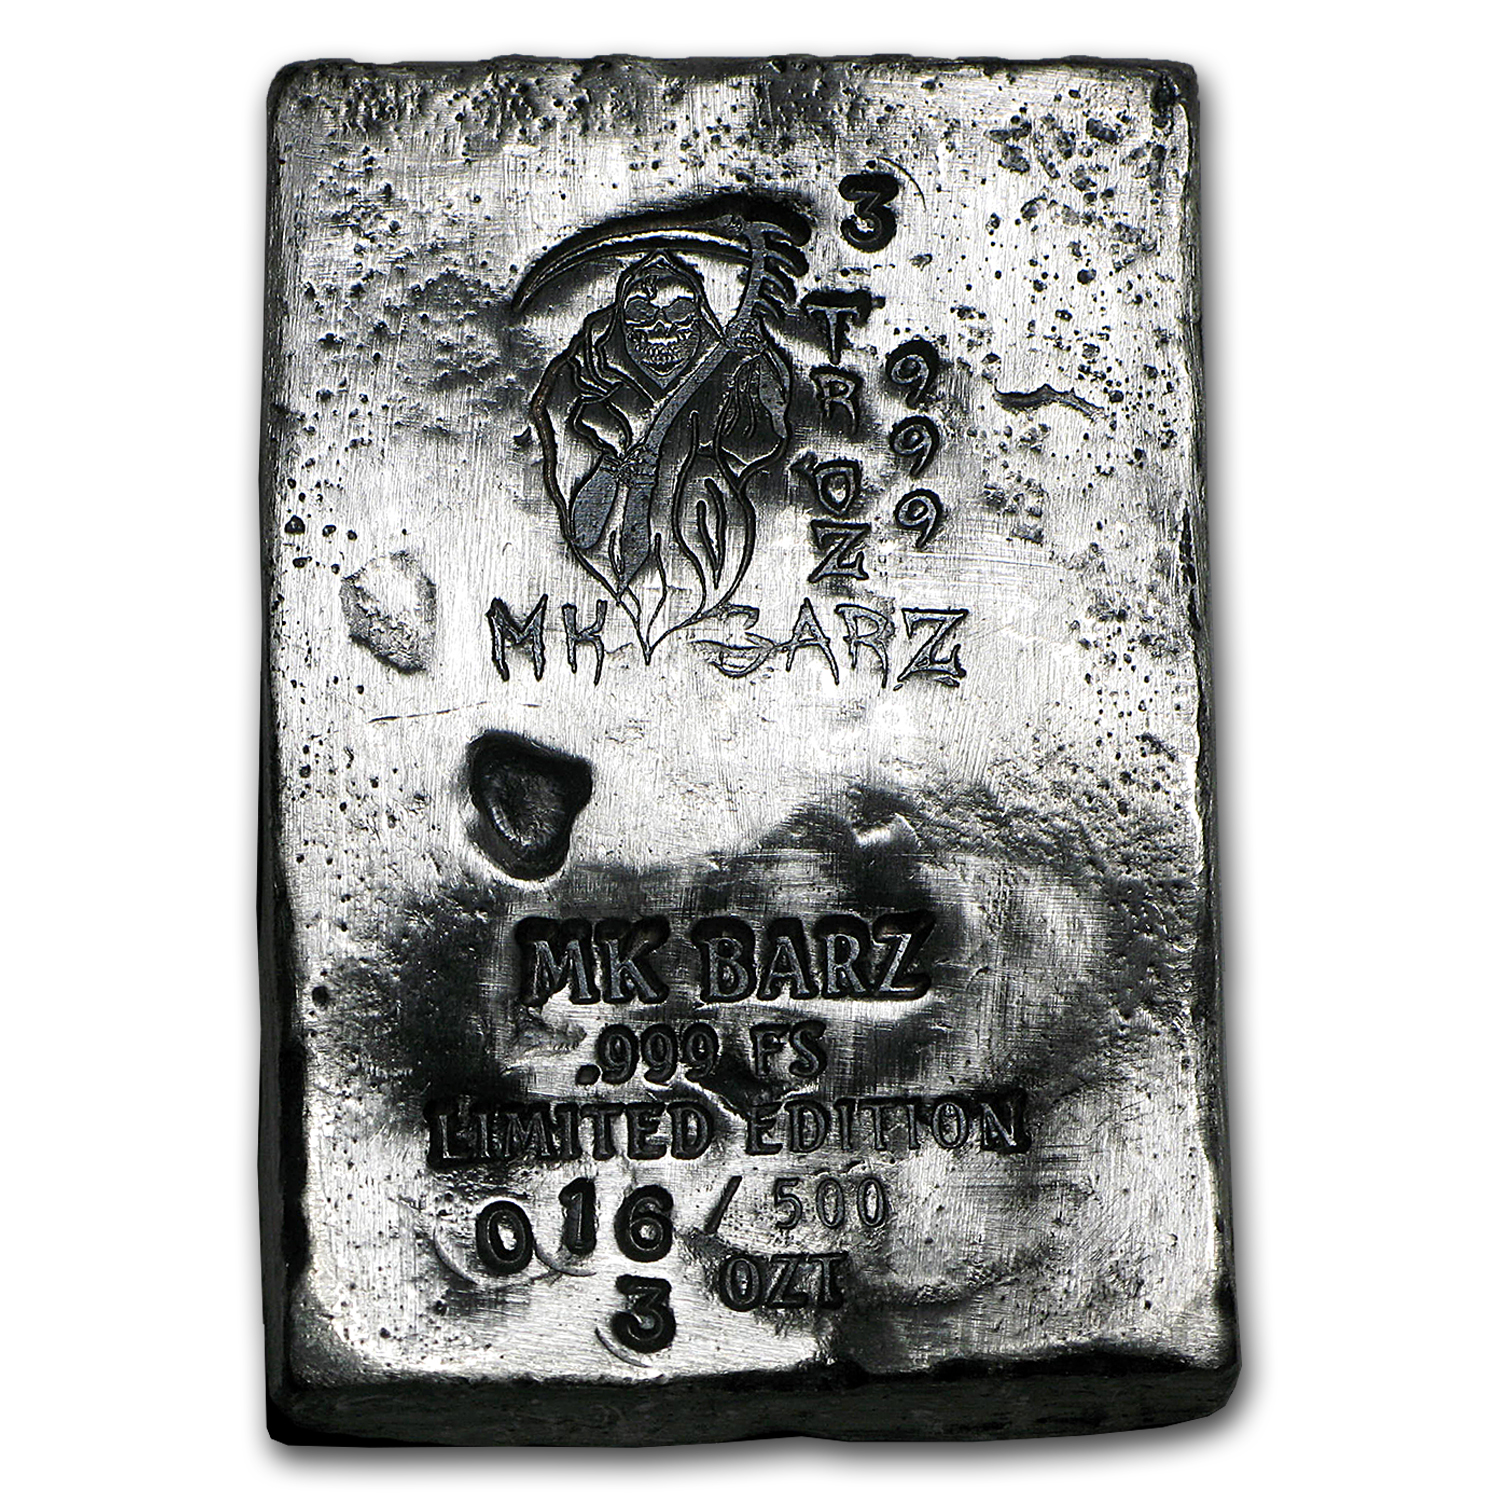 3 oz Silver Bar - Limited Edition (Grim Reaper, Death is Coming)